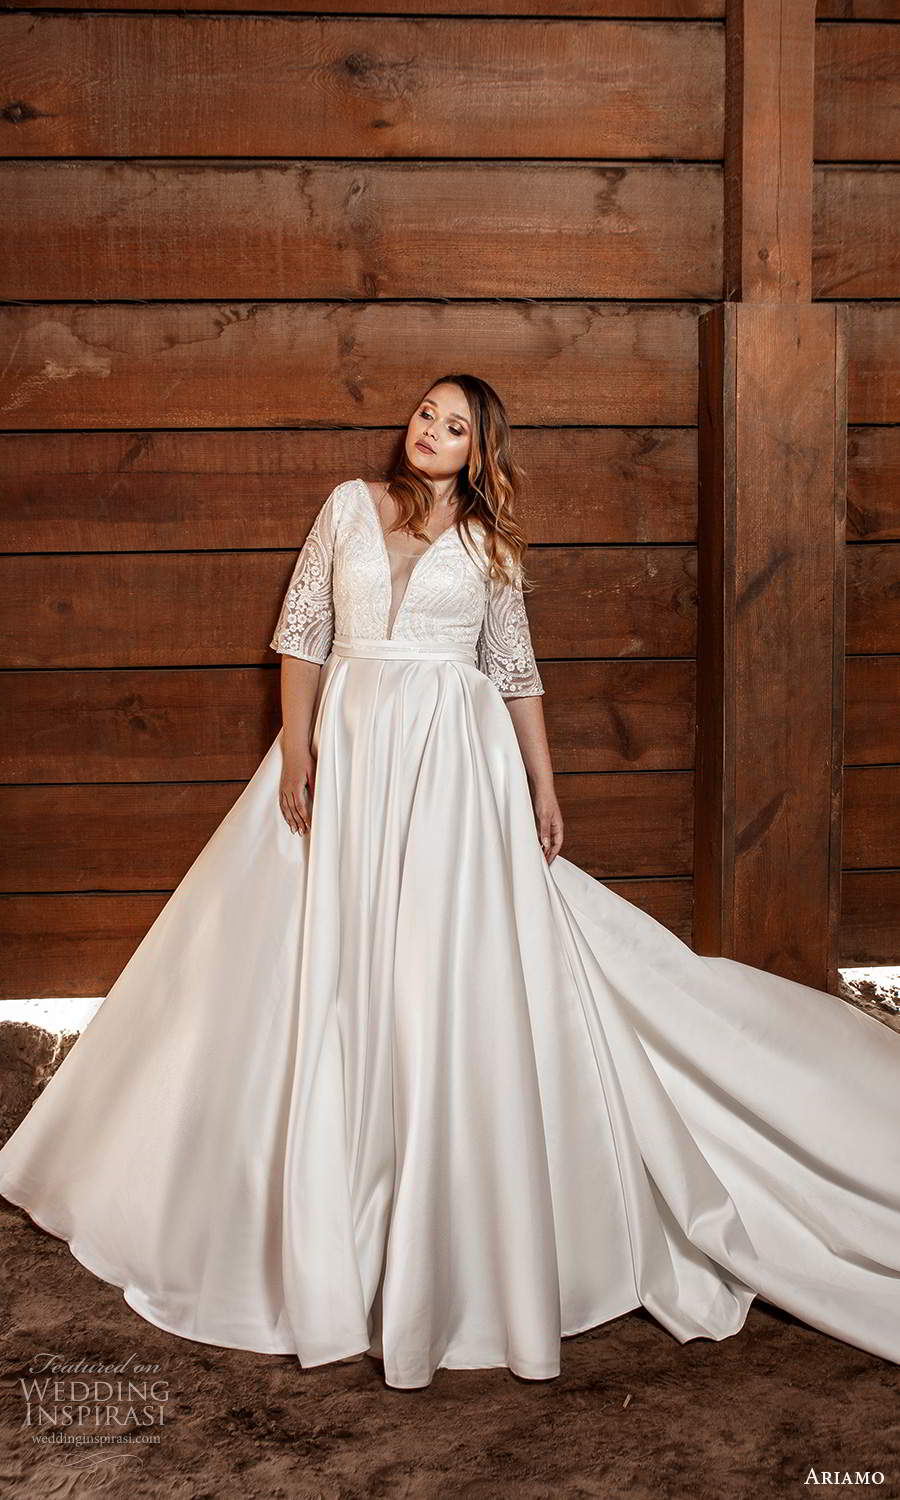 ariamo 2021 plus bridal half sleeves plunging v necklnie embellished bodice clean skirt a line ball gown wedding dress chapel train (5) mv